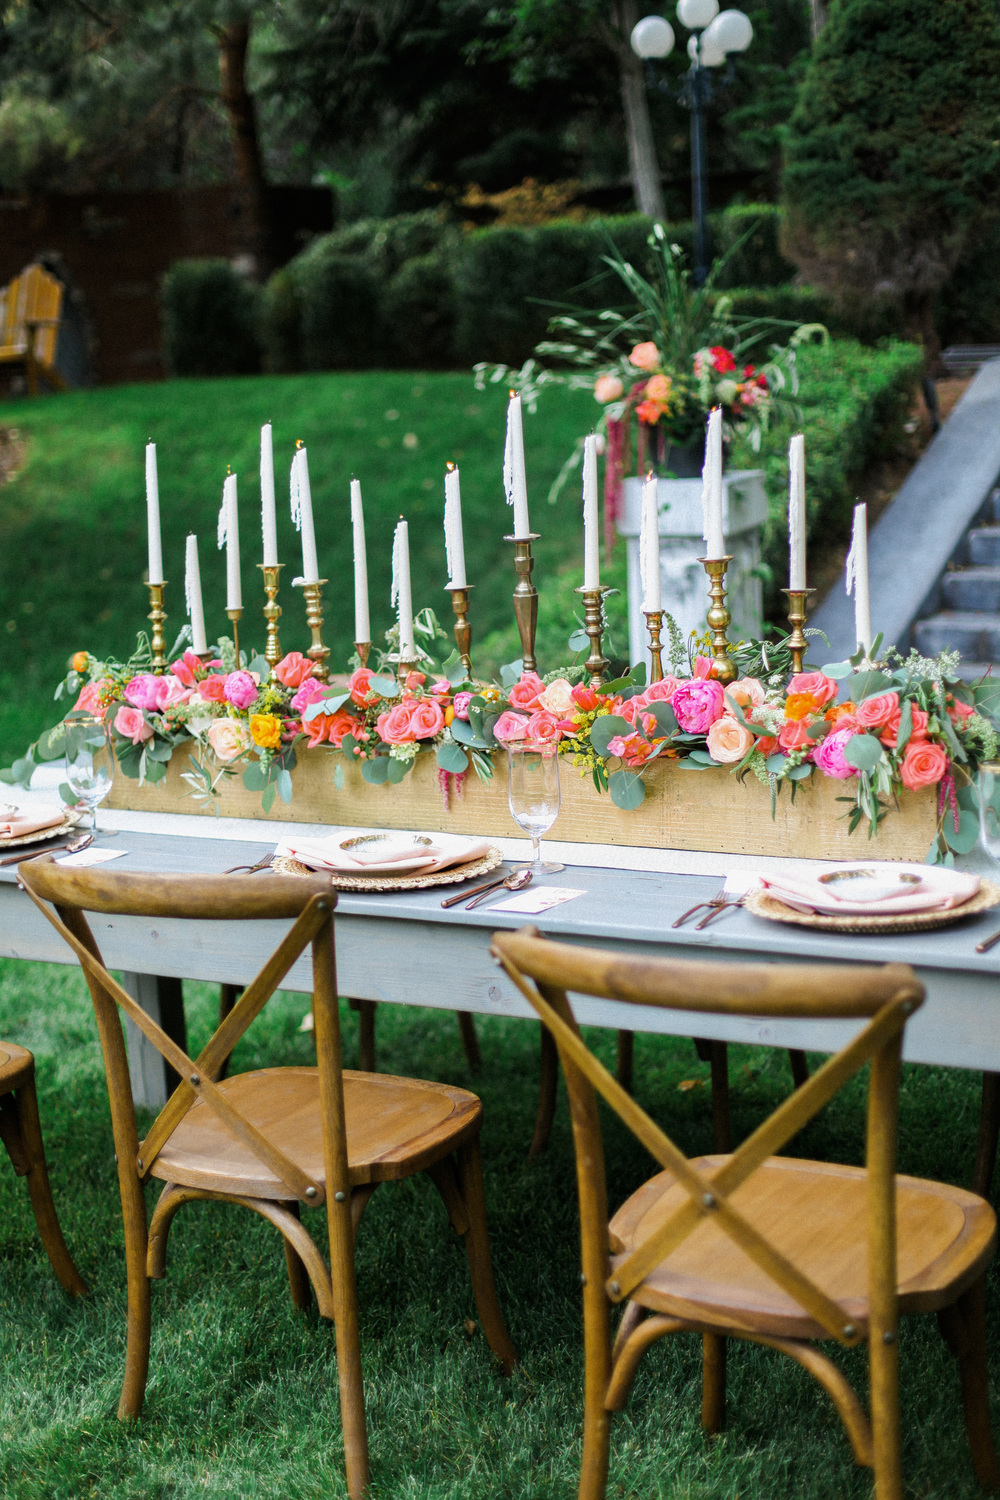 Jacque Lynn Photography | English Garden Wedding Inspiration | Michelle Leo Events | Utah Wedding Design and Planning